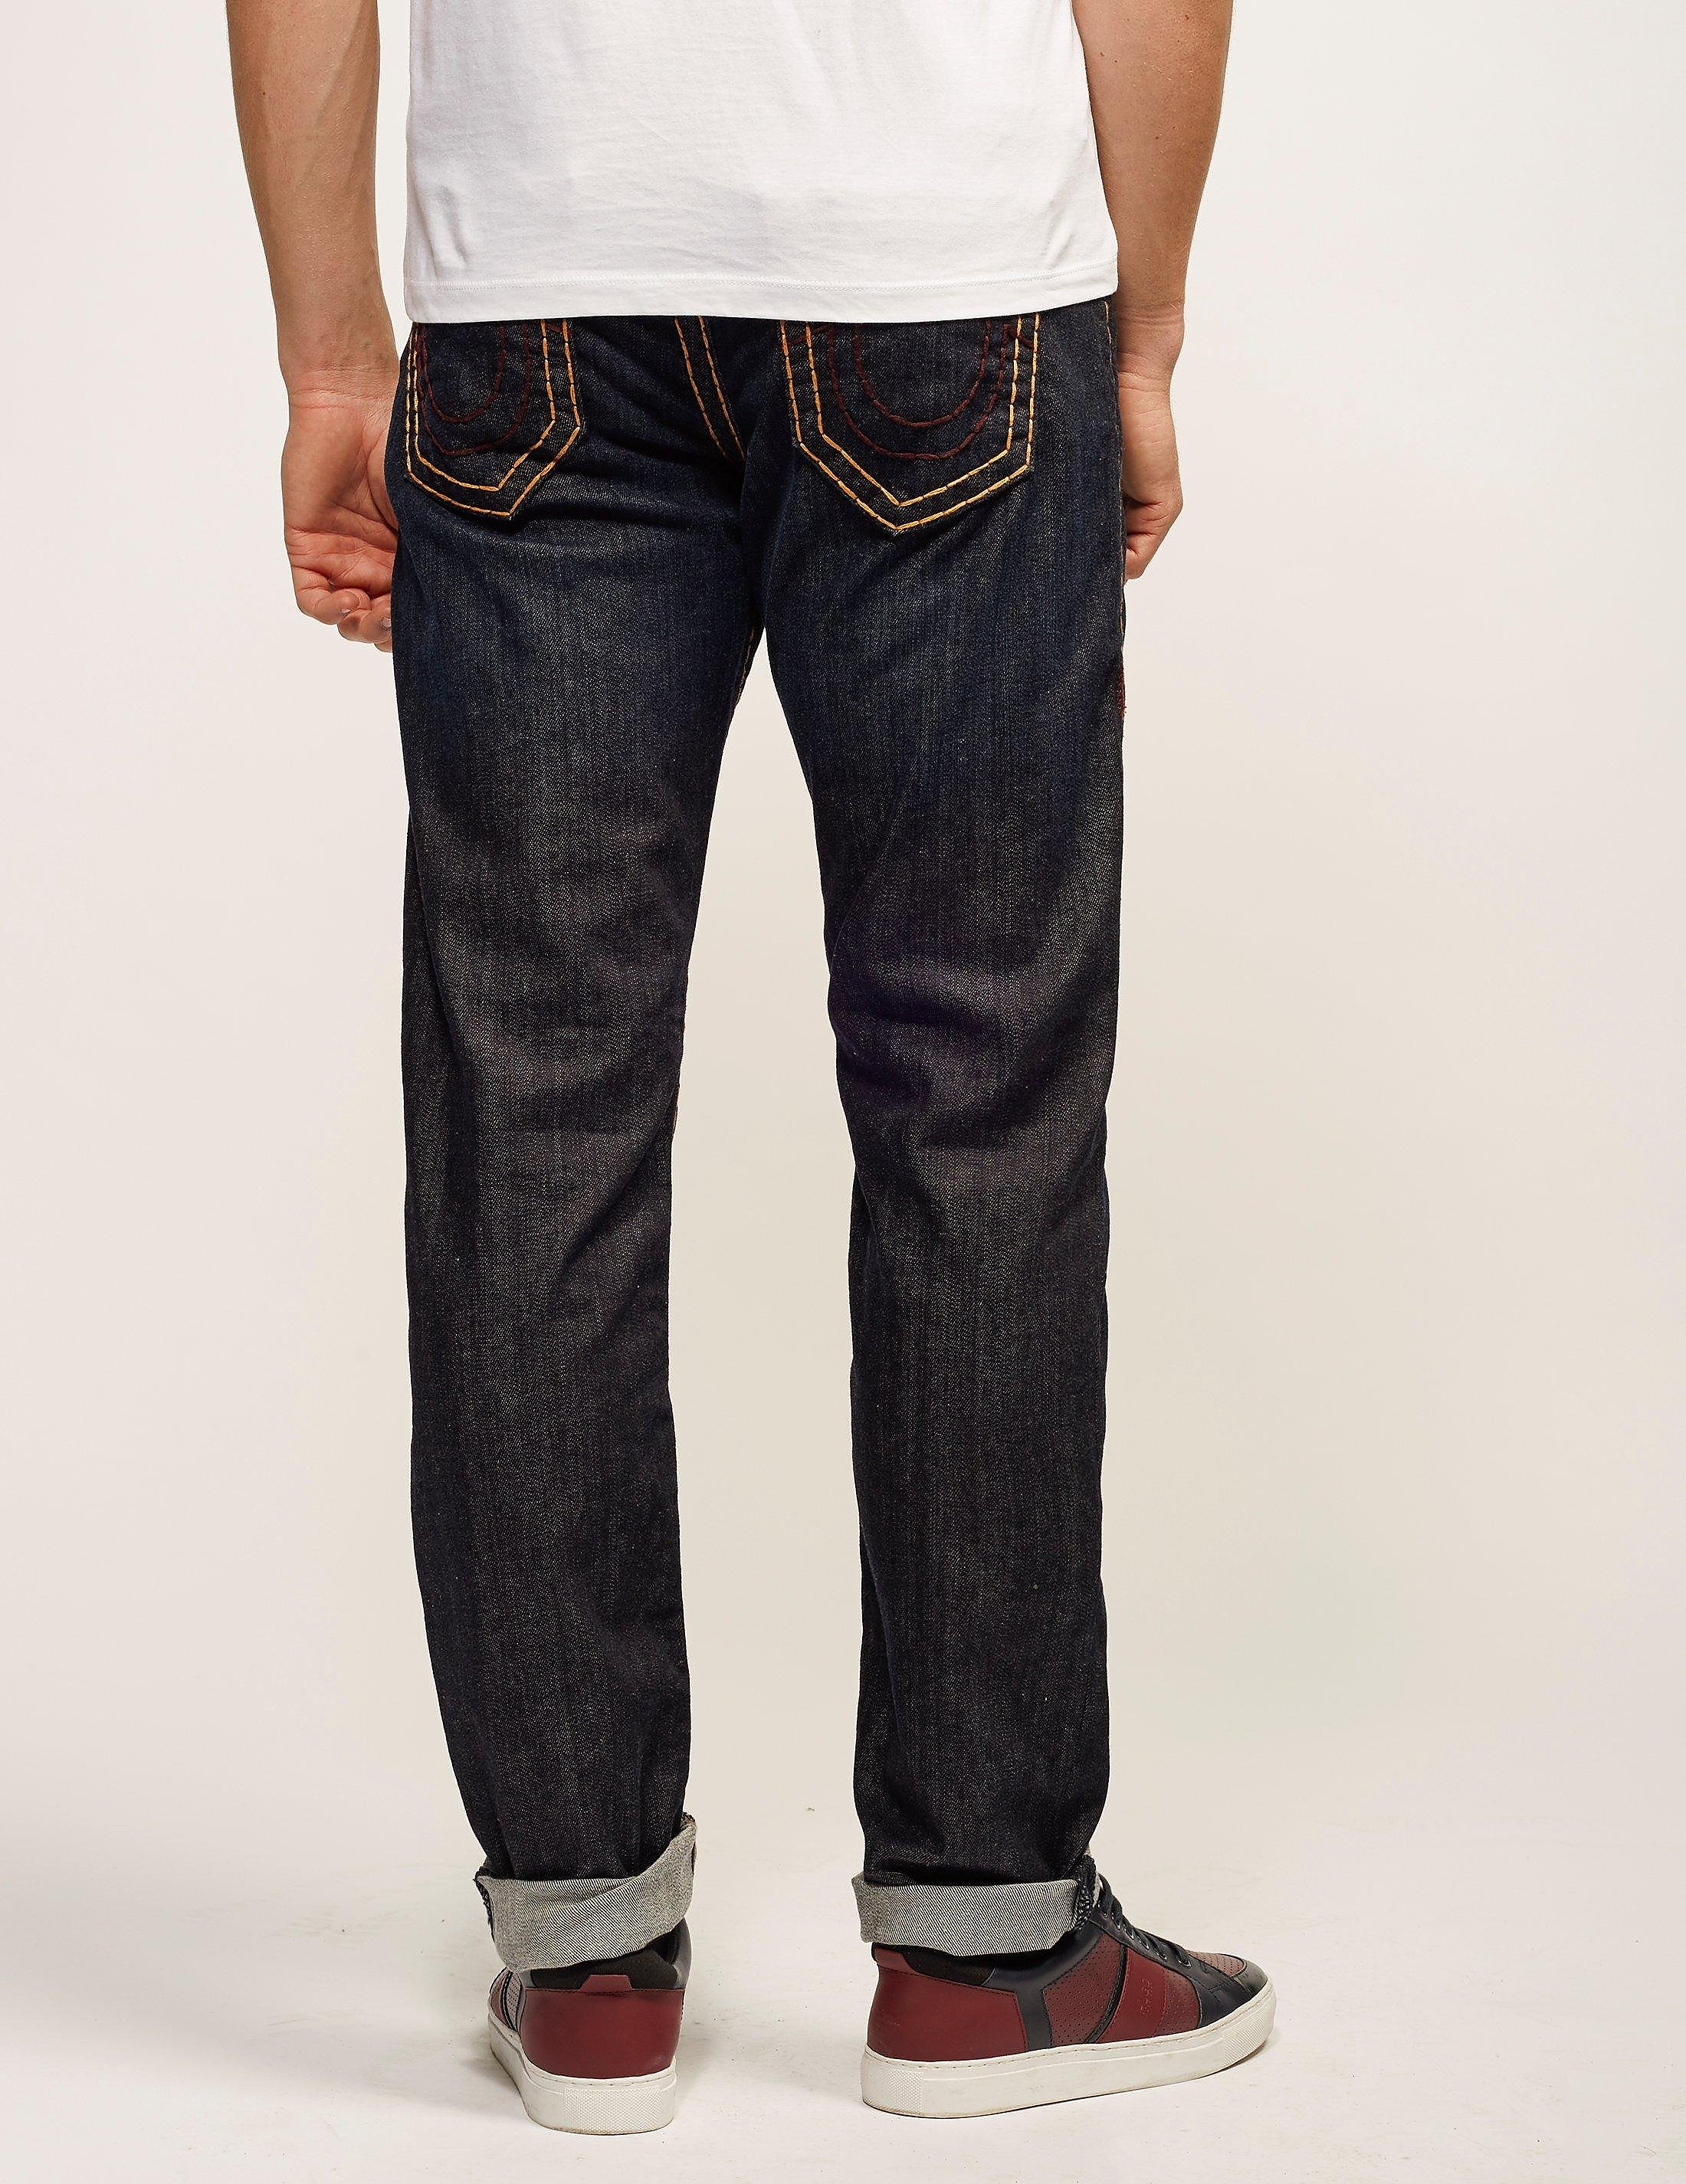 True Religion Geno Super T Want Slim Fit Jeans